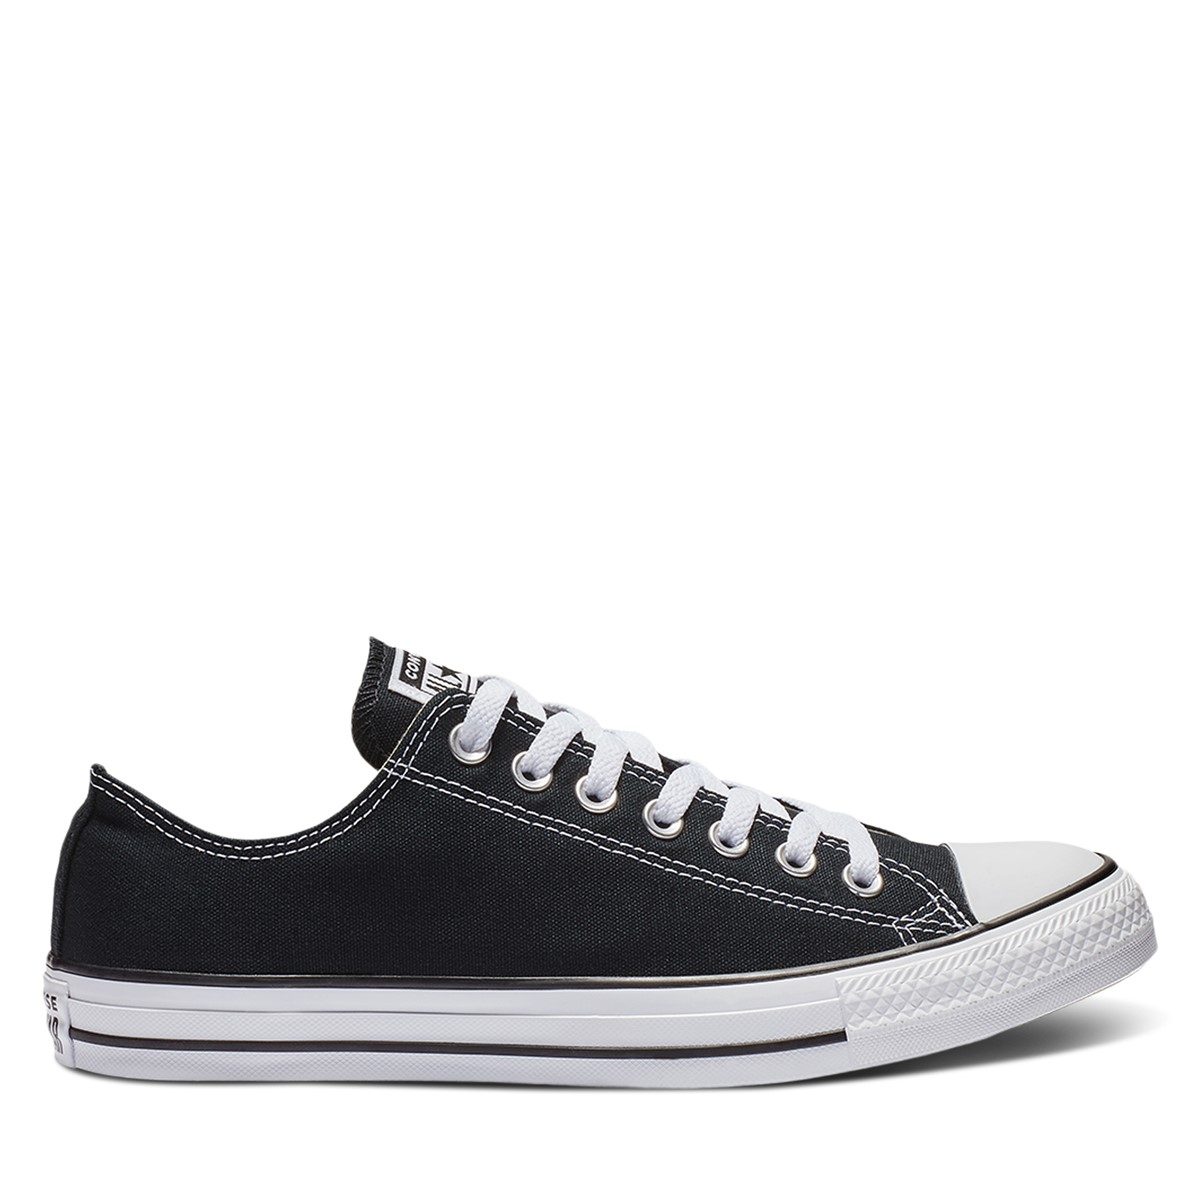 Men's Chuck Taylor Classic Low Black Sneaker